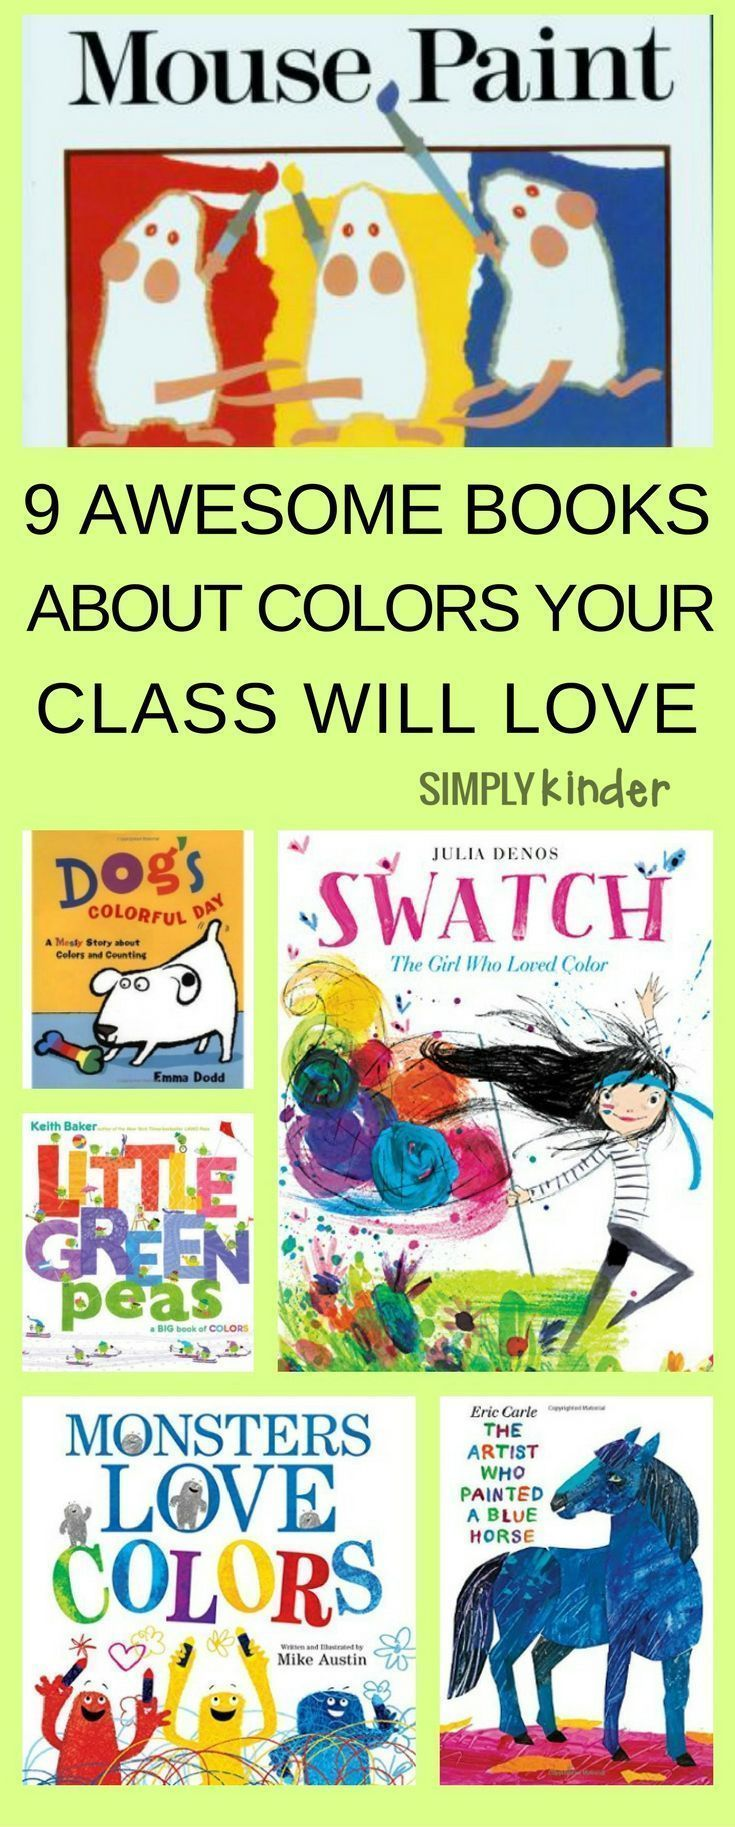 9 Awesome Books About Color Your Class Will Love | Preschool ideas ...